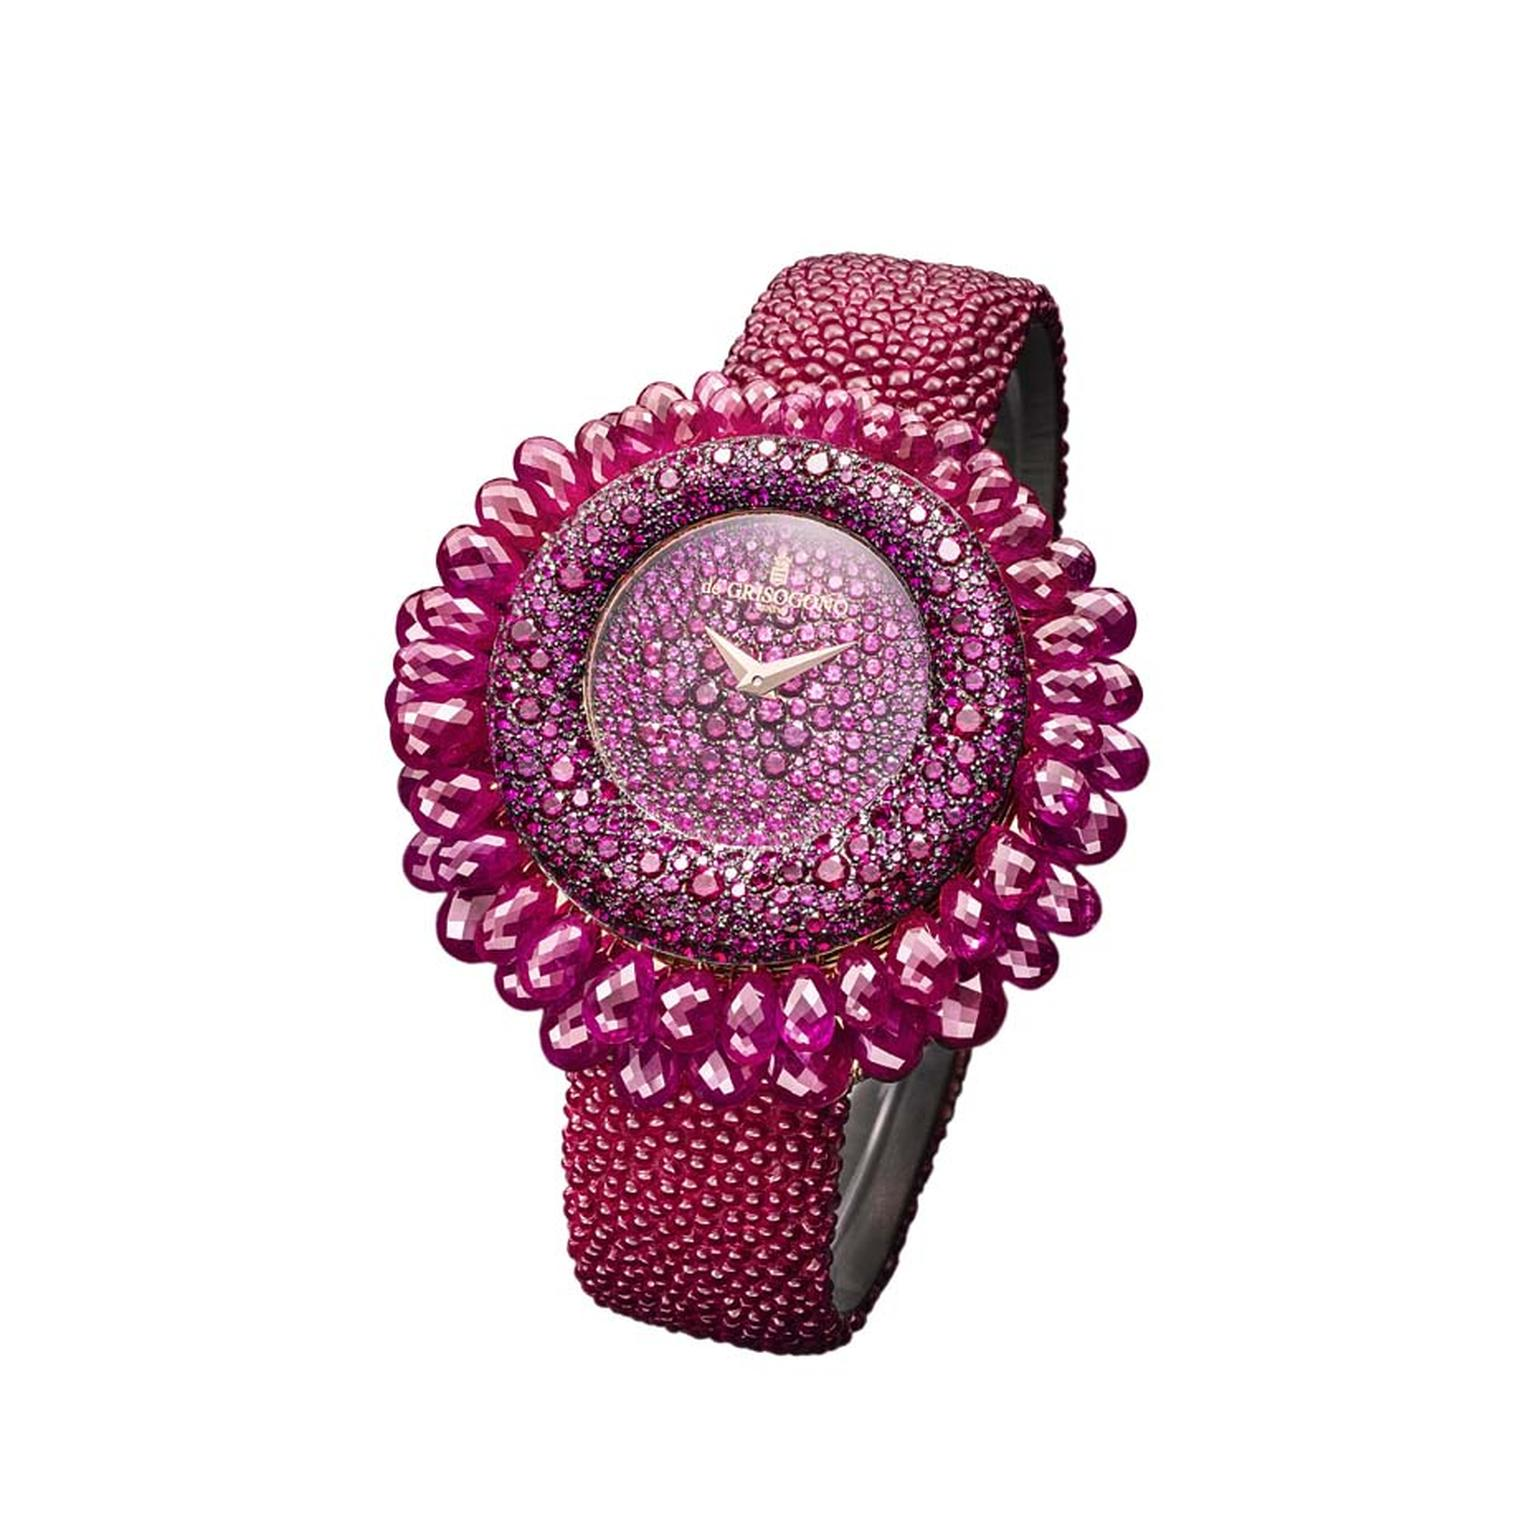 Grappoli ruby watch from de GRISOGONO